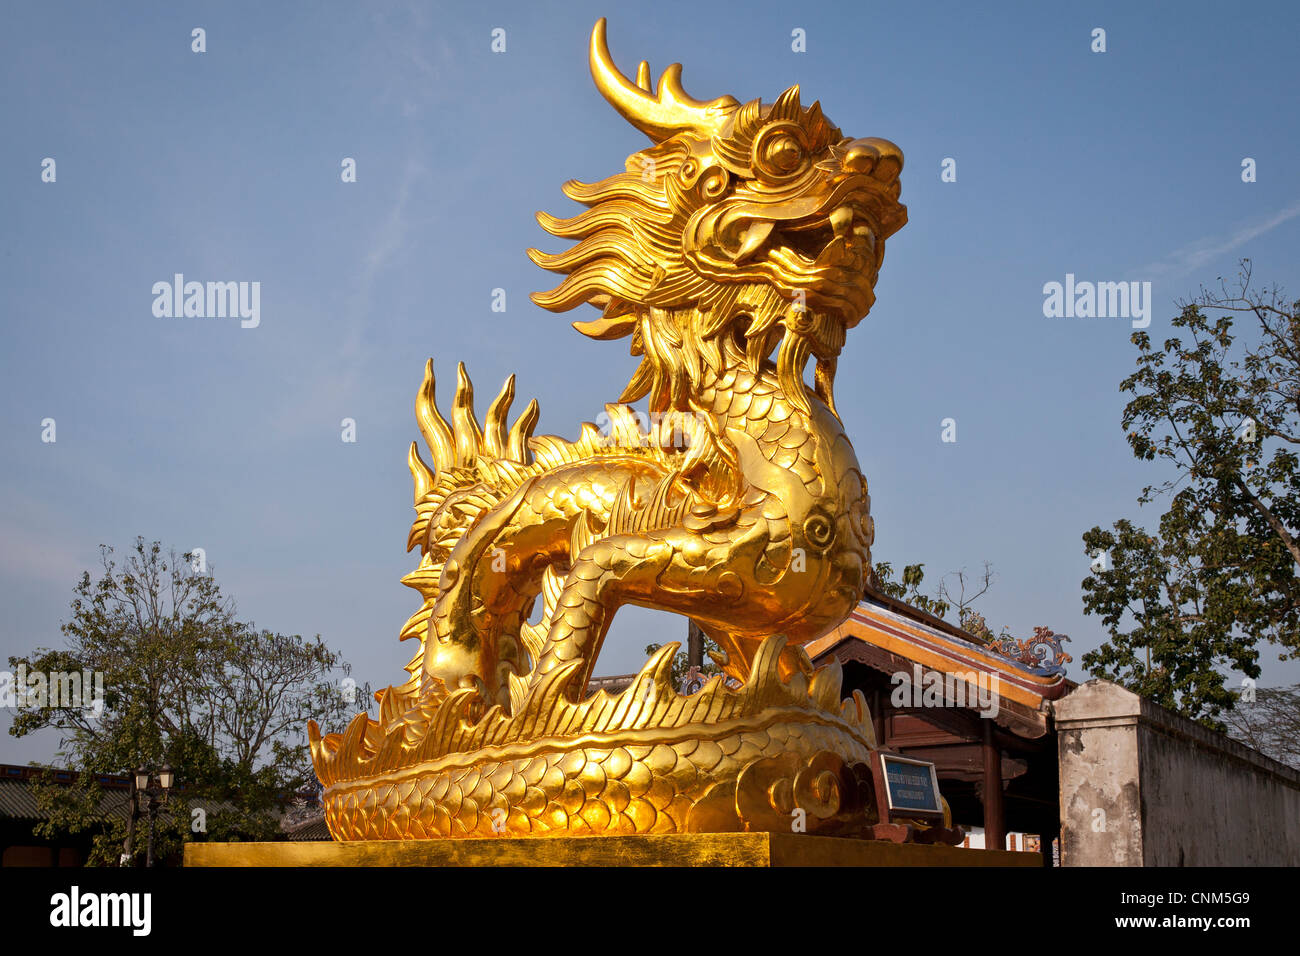 Vietnam Dragon: Golden Dragon, Symbol Of Nguyen Dynasty, In The Imperial